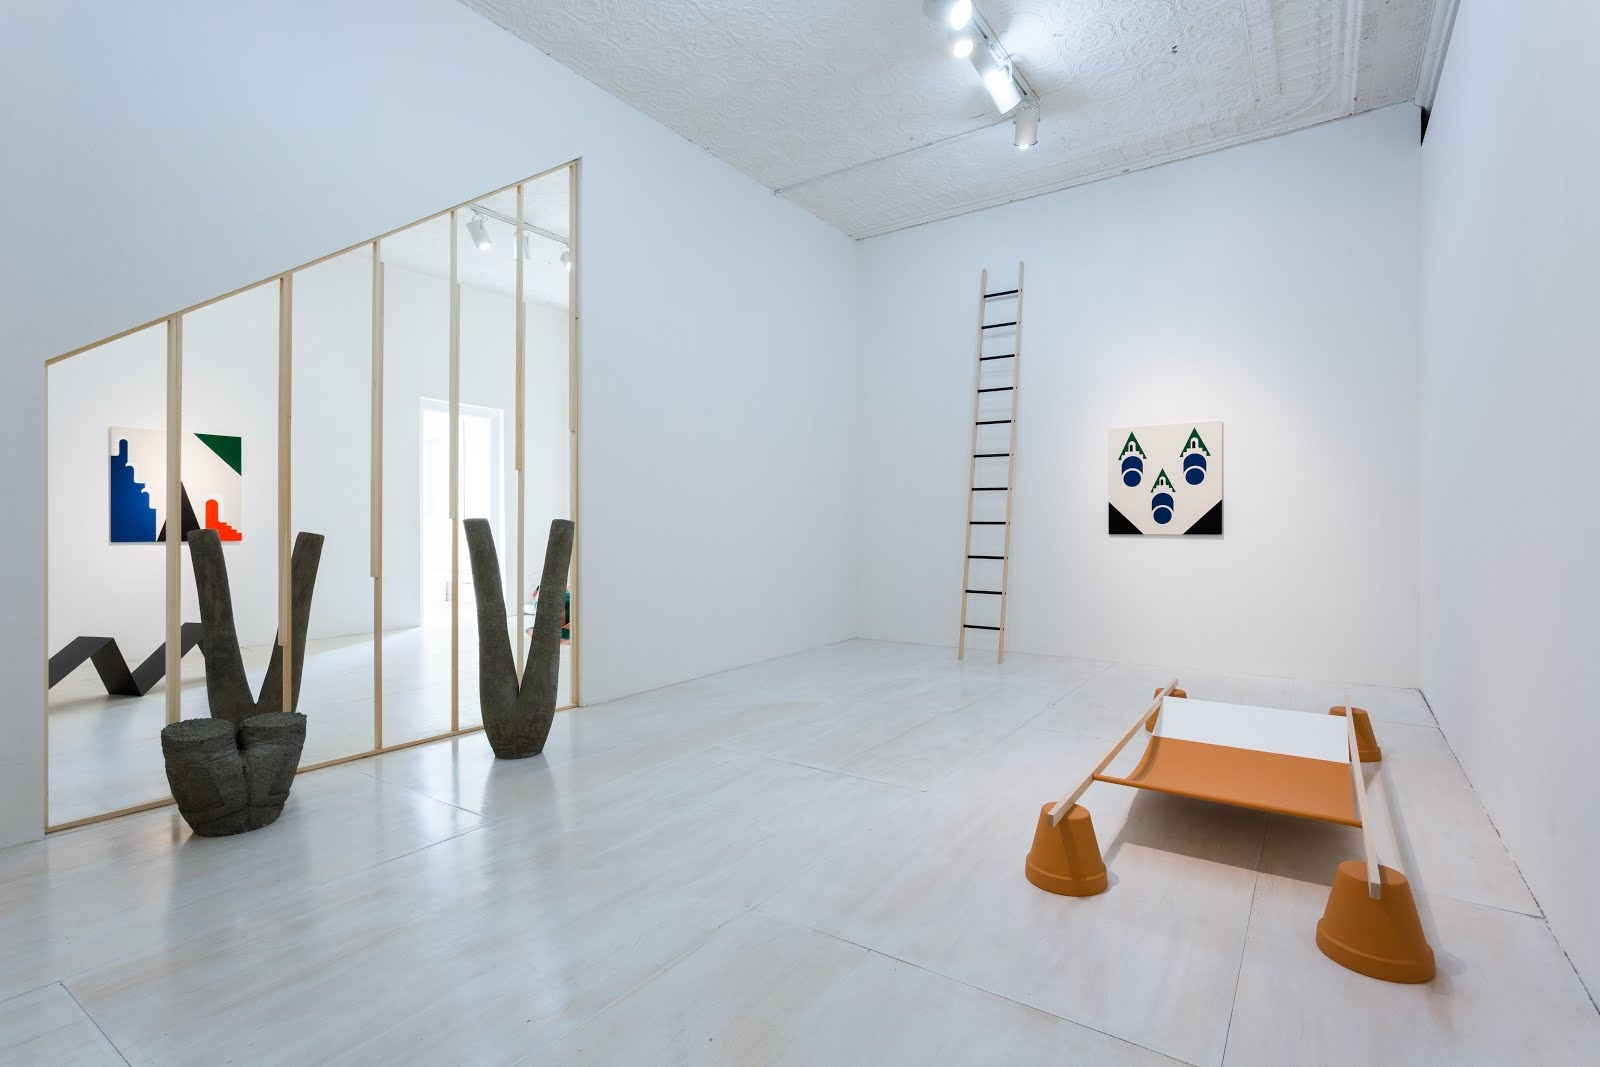 Installation view, Math Bass: Off the Clock at MoMA PS1, 2015. Image courtesy of the artist and MoMA PS1. Photograph by Pablo Enriquez.